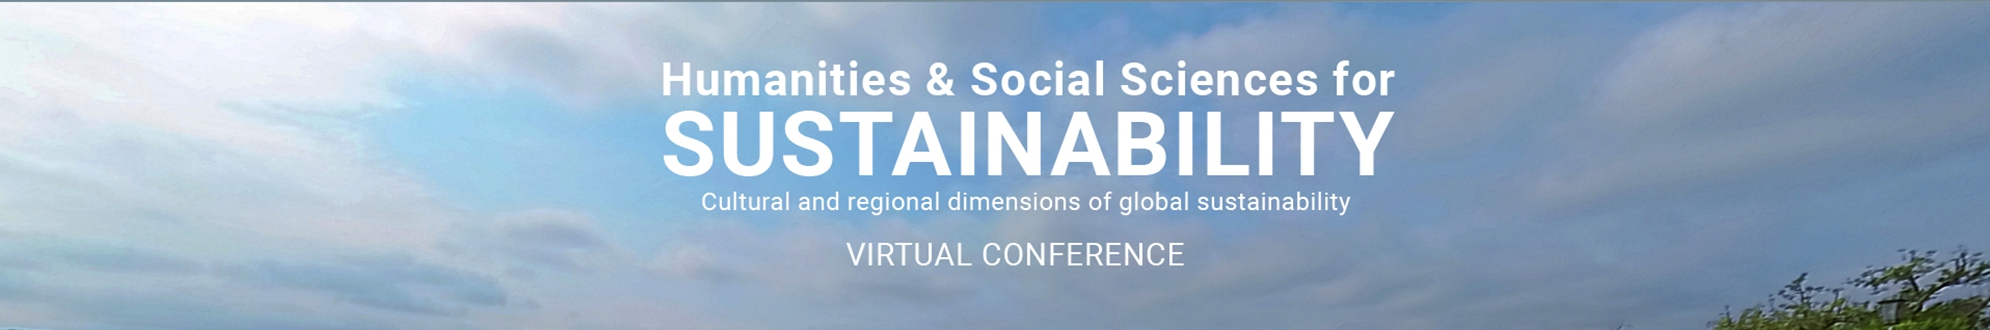 Humanities & Social Sciences for SUSTAINABILITY: Visual Conference http://www.cipsh.net/web/news-319.htm